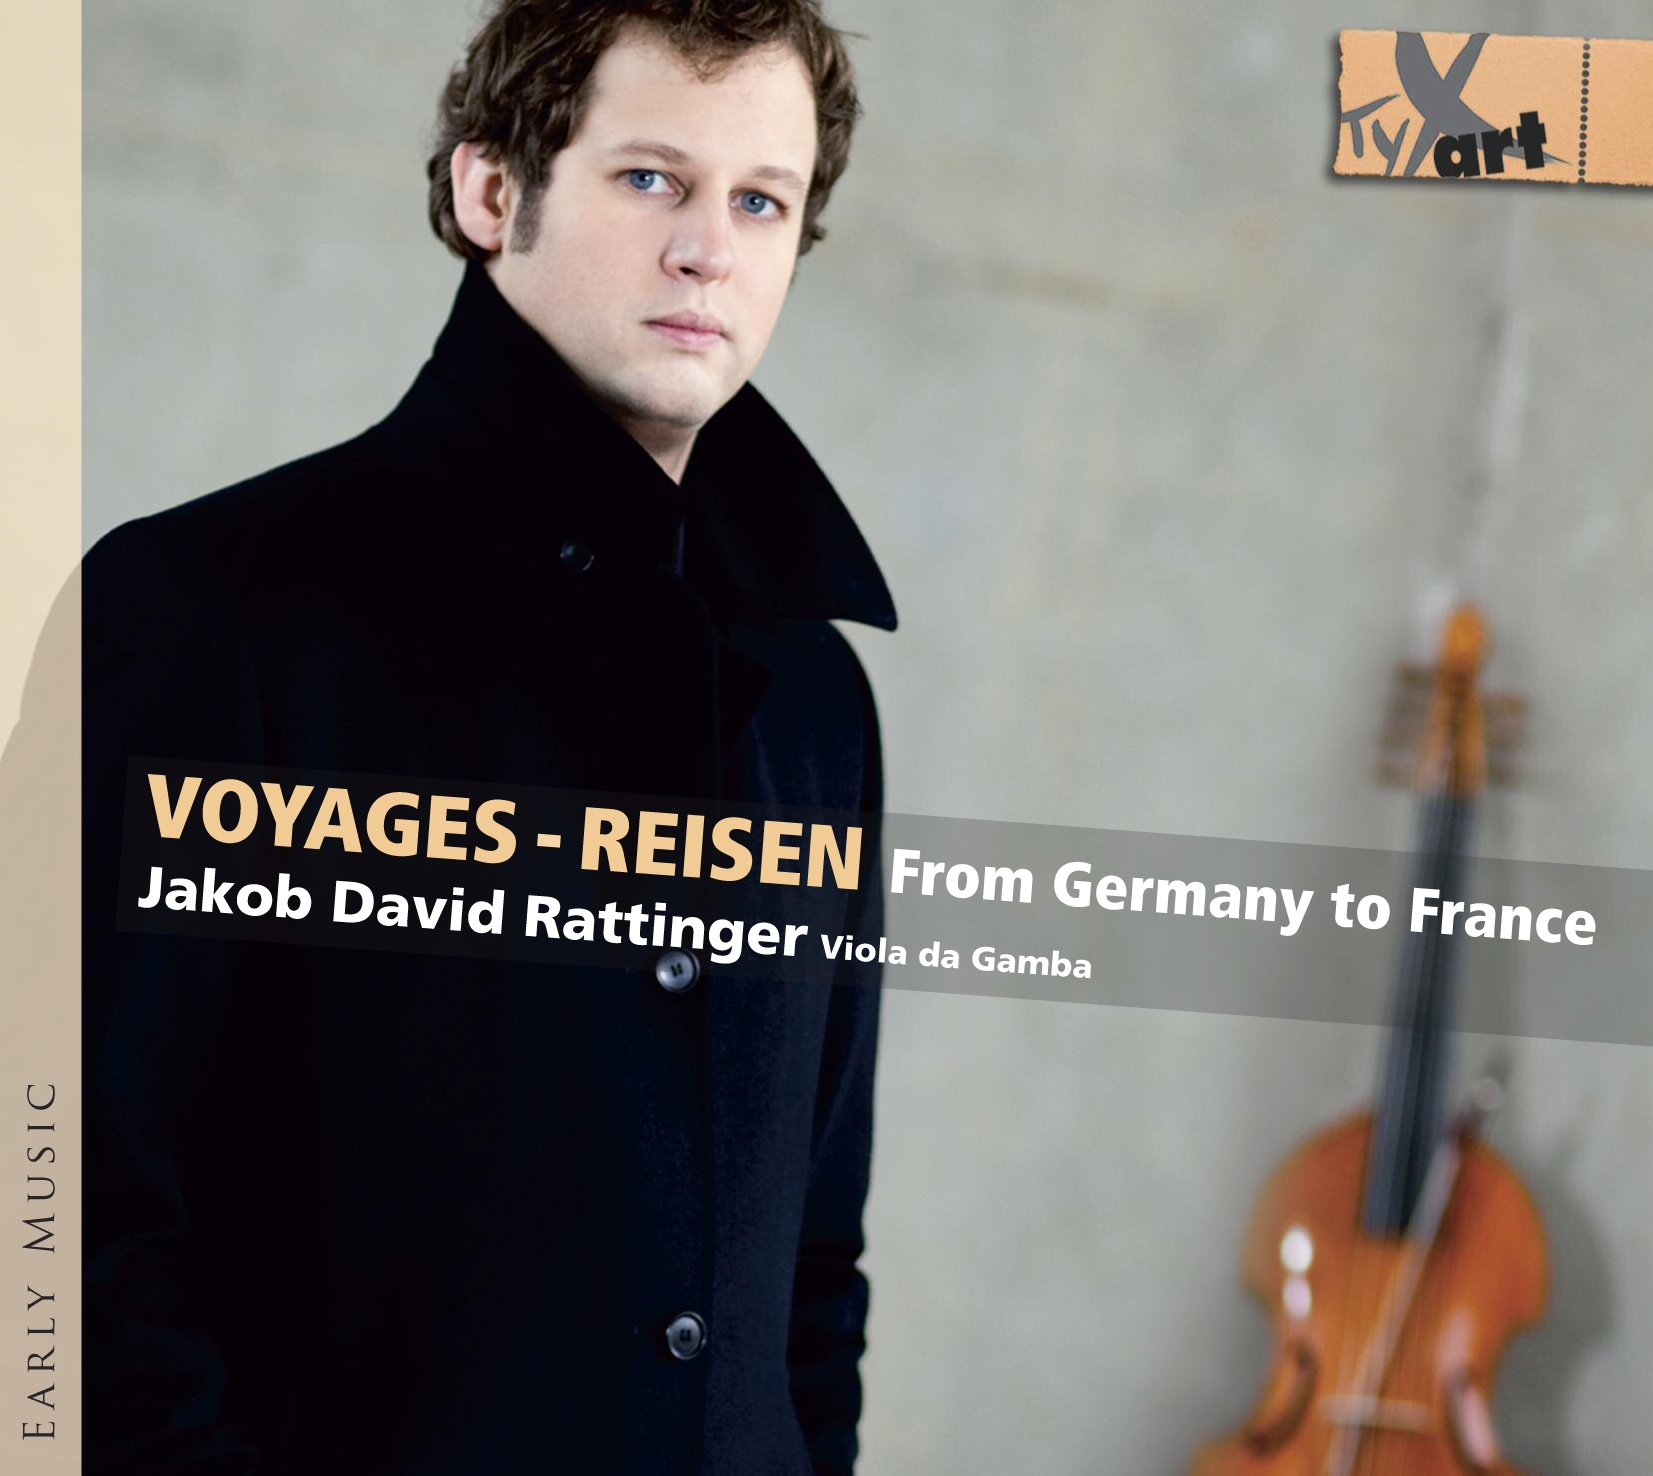 Voyages - Reisen: Jakob David Rattinger